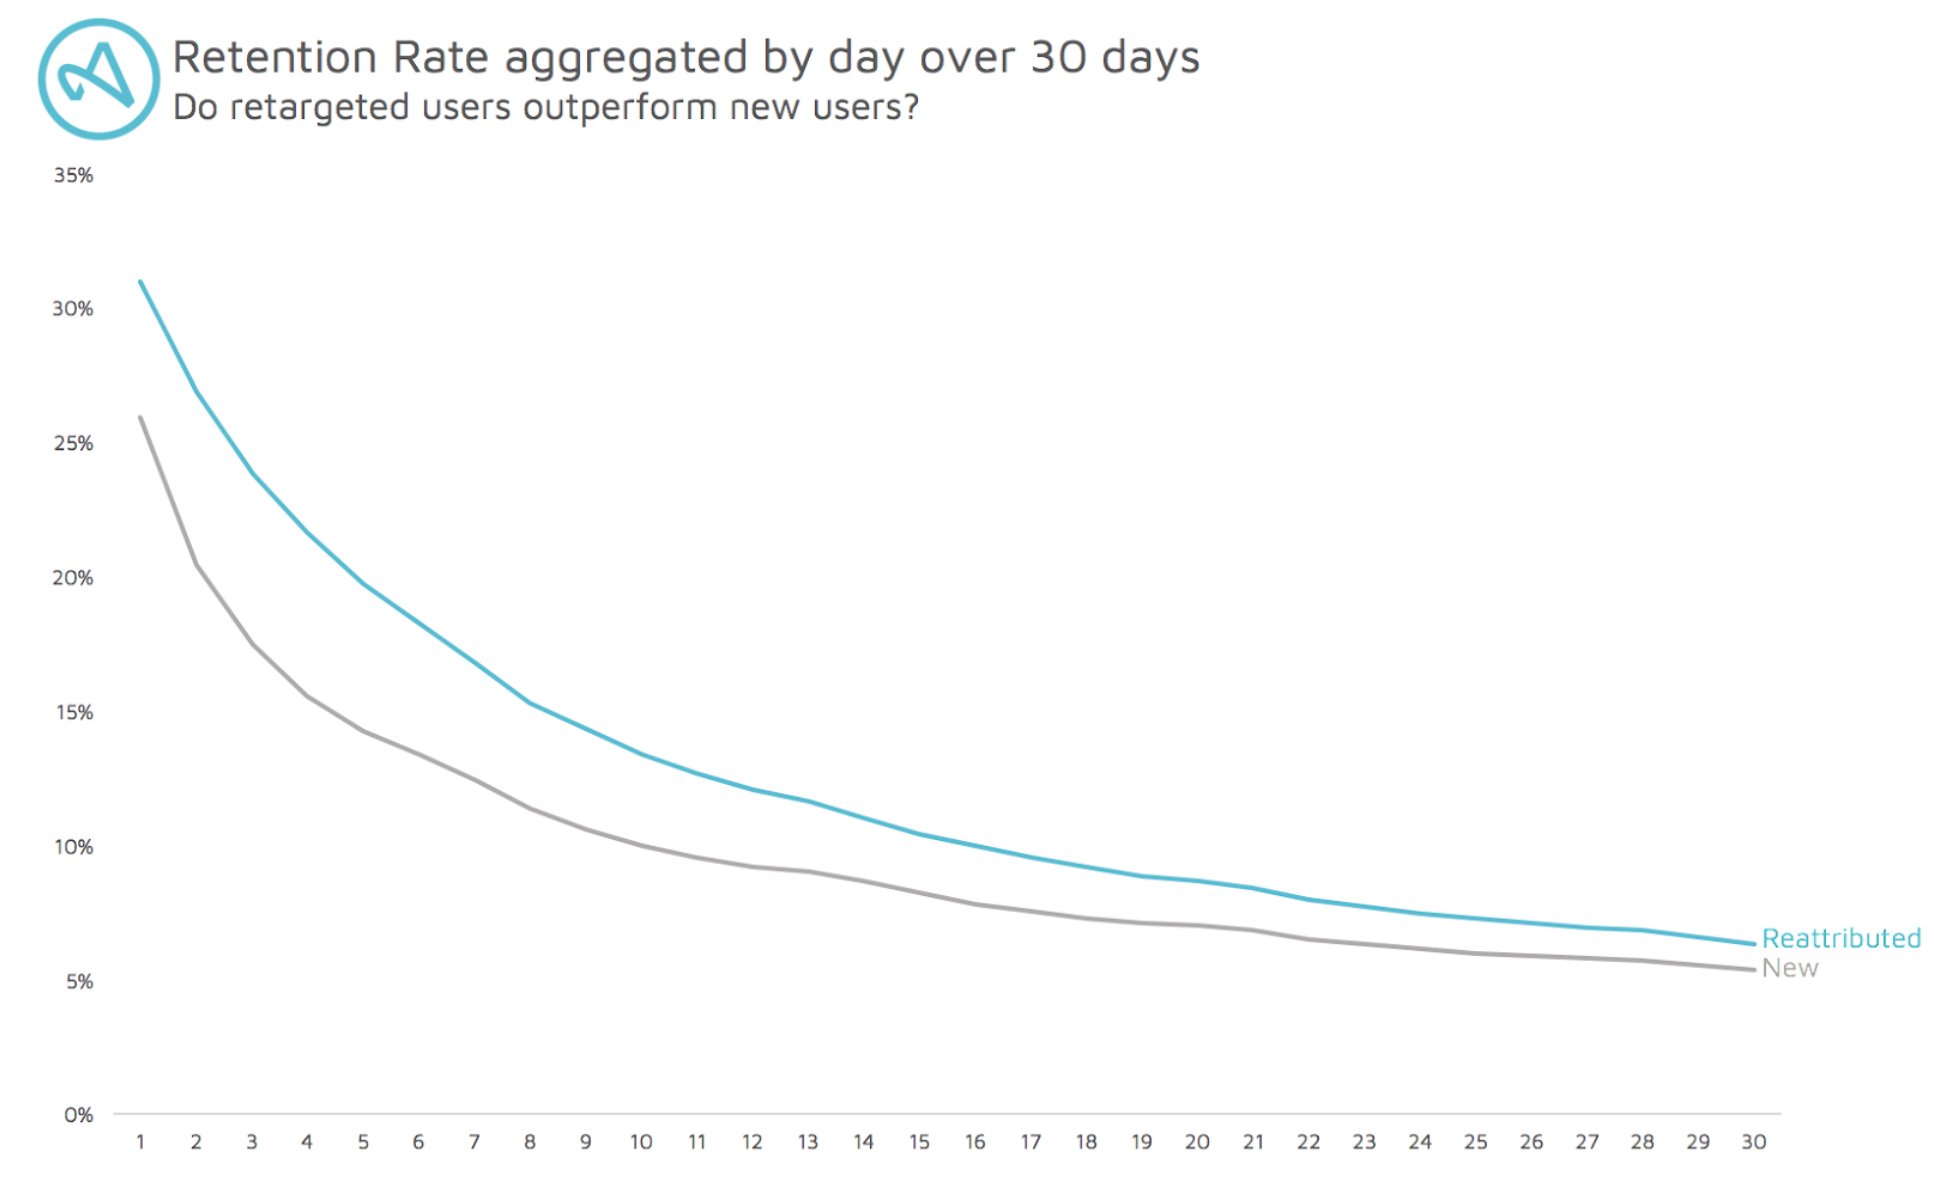 Retention rates aggregated by day graph